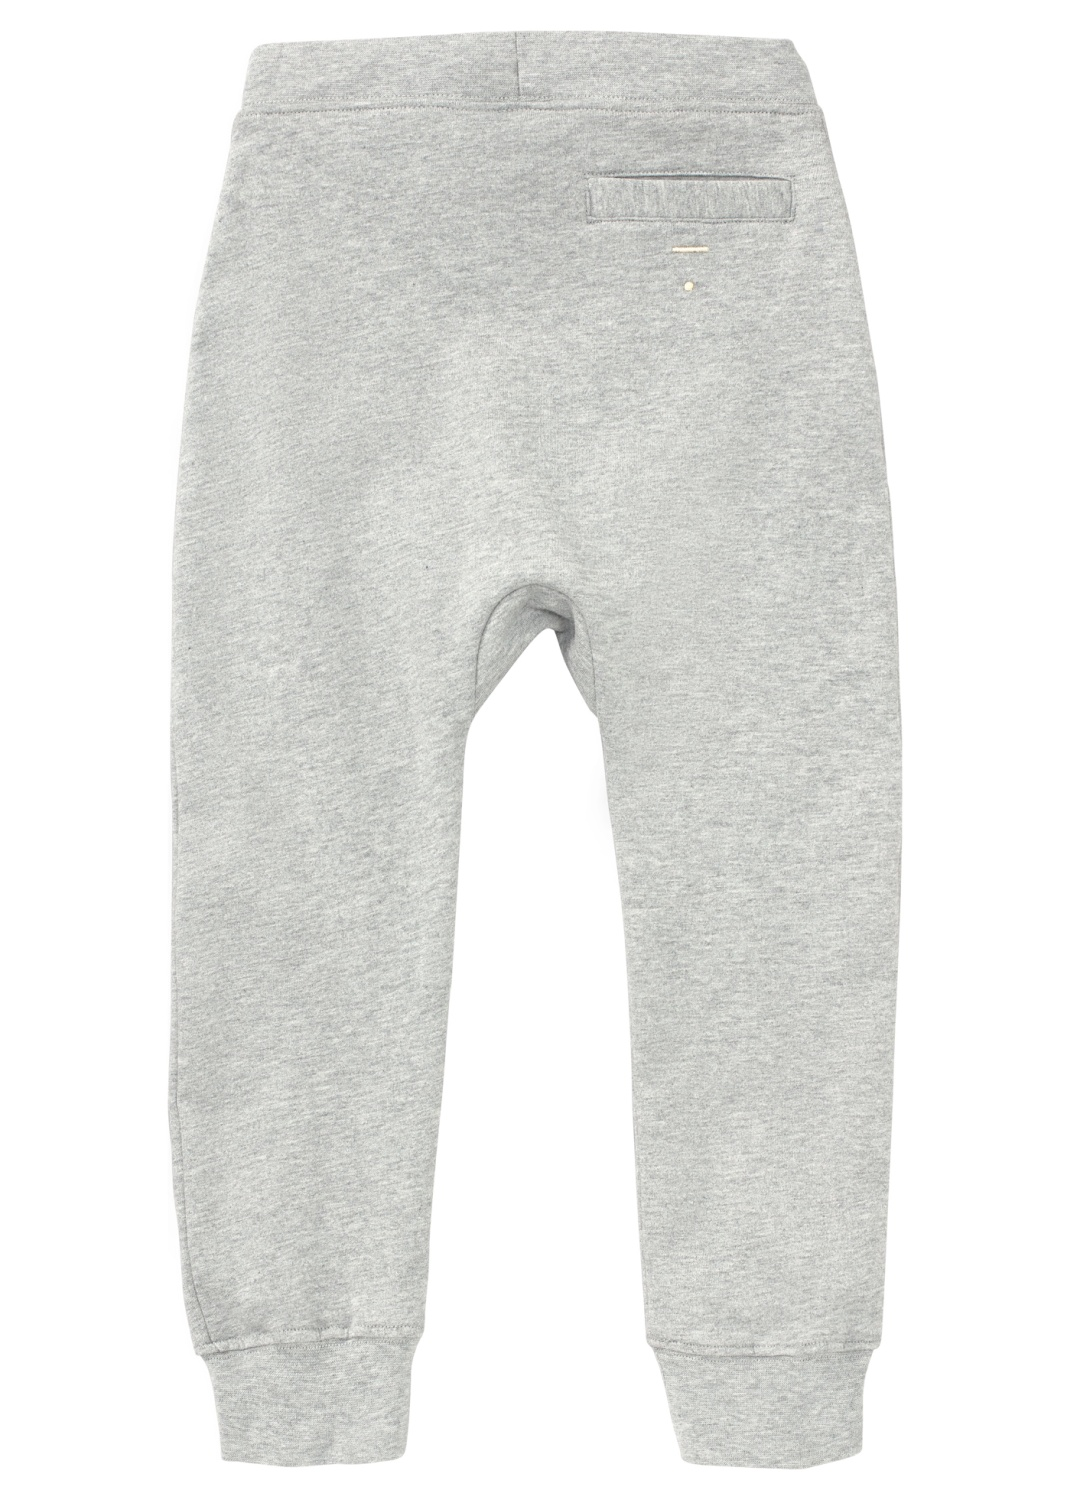 Baggy Pants image number 1